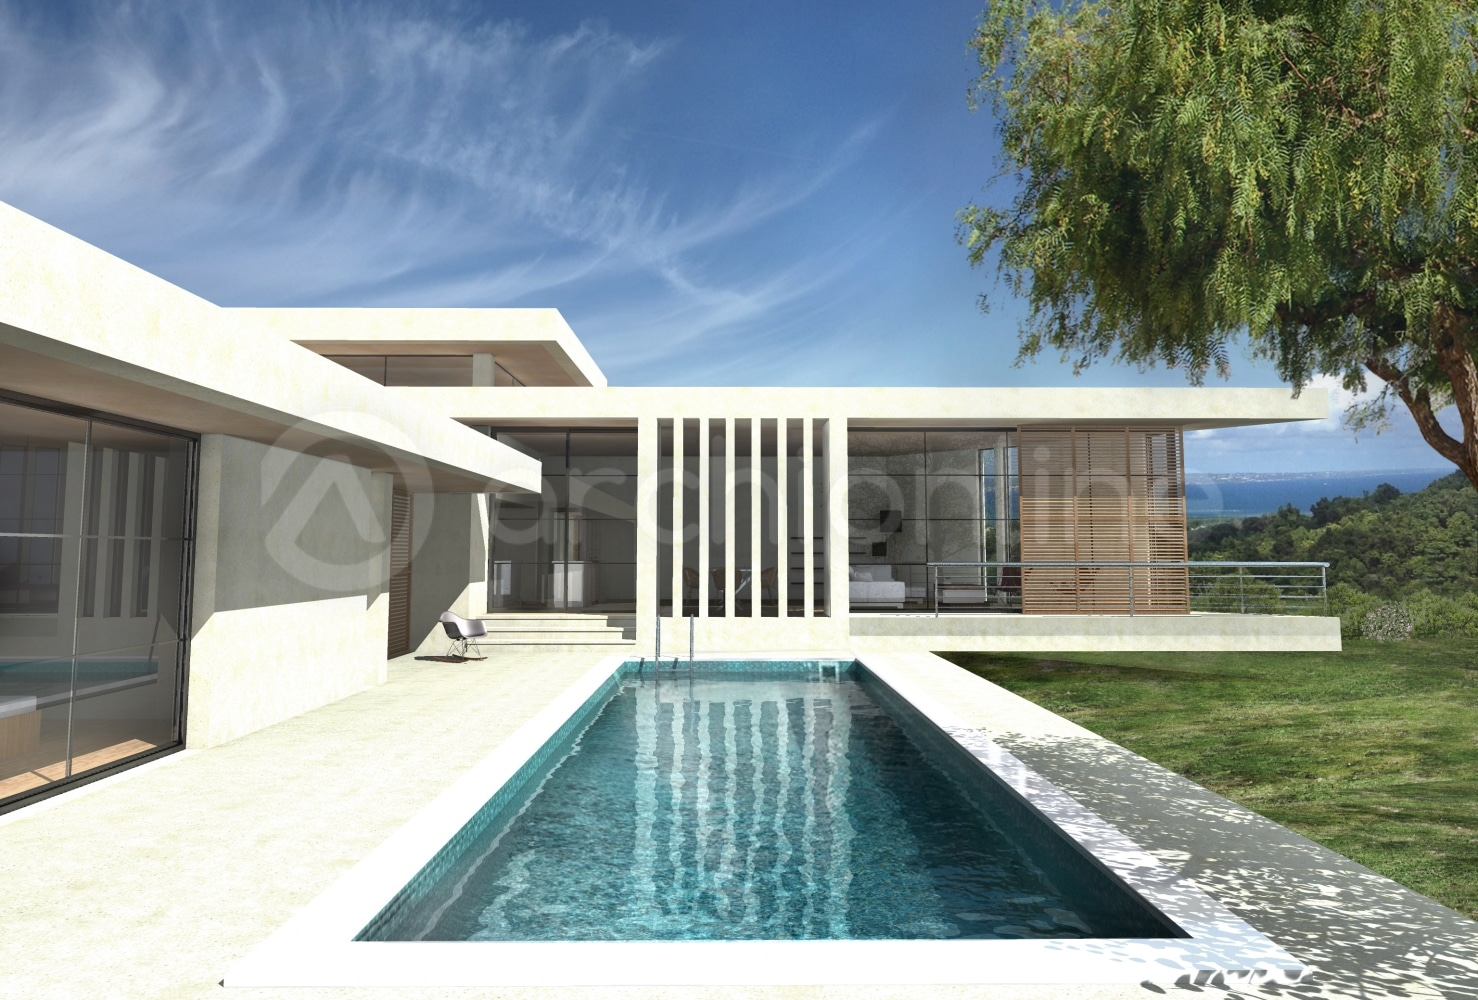 Maison moderne plain pied architecte - Plan de maison contemporaine plain pied ...